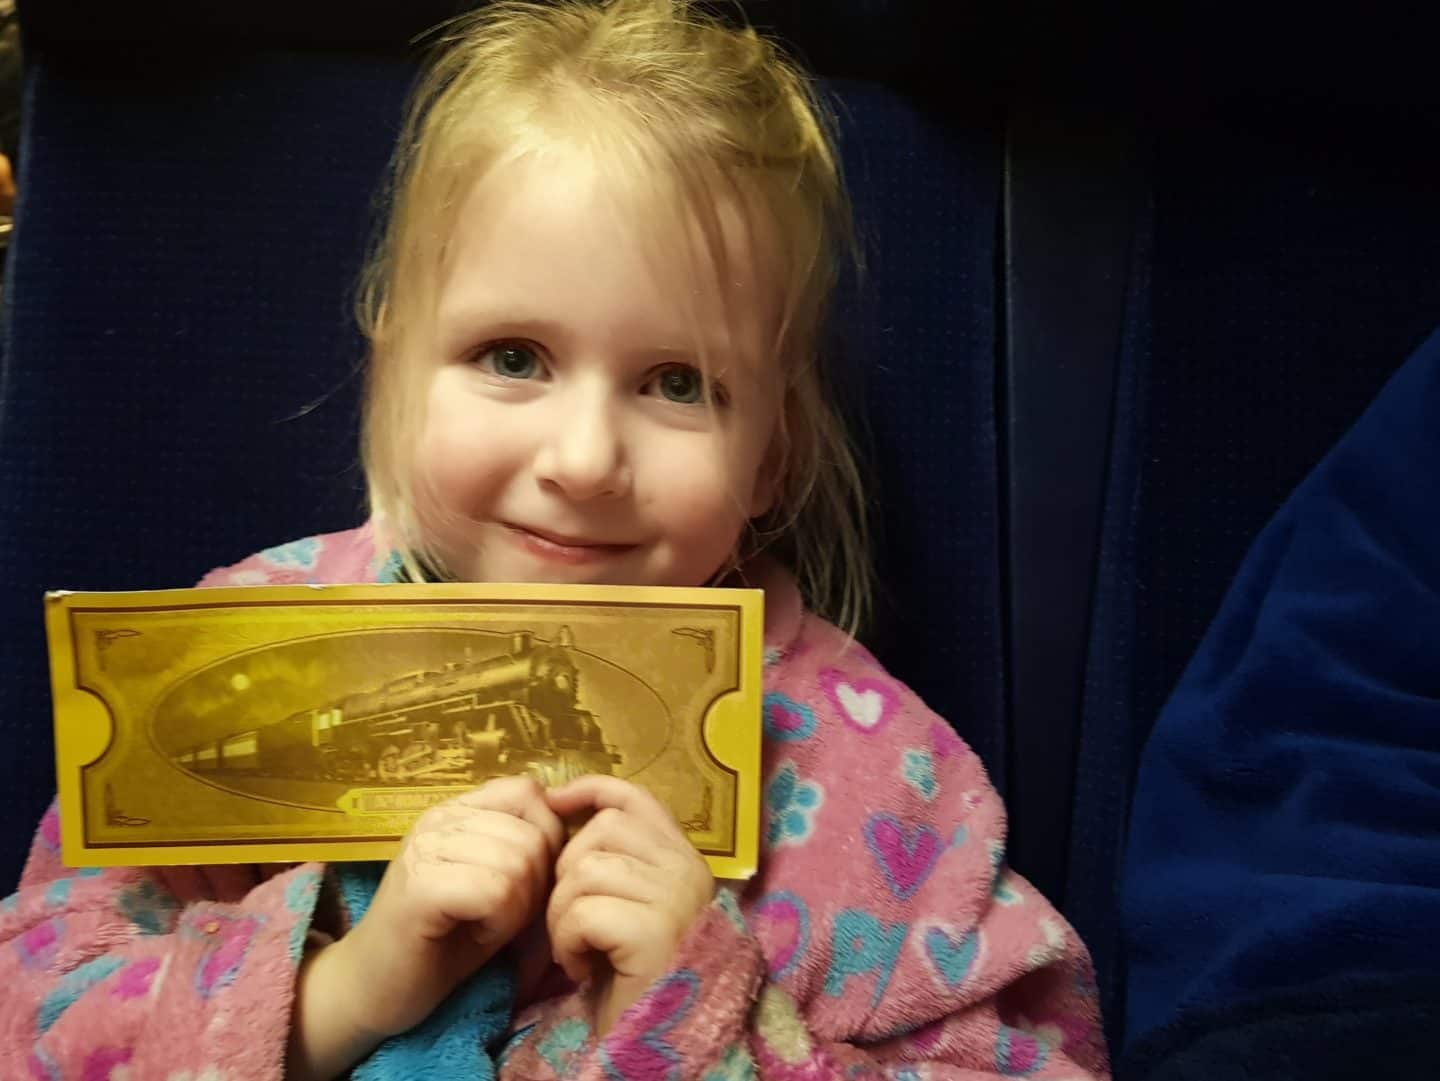 Polar Express Telford girl in dressing gown holding golden ticket